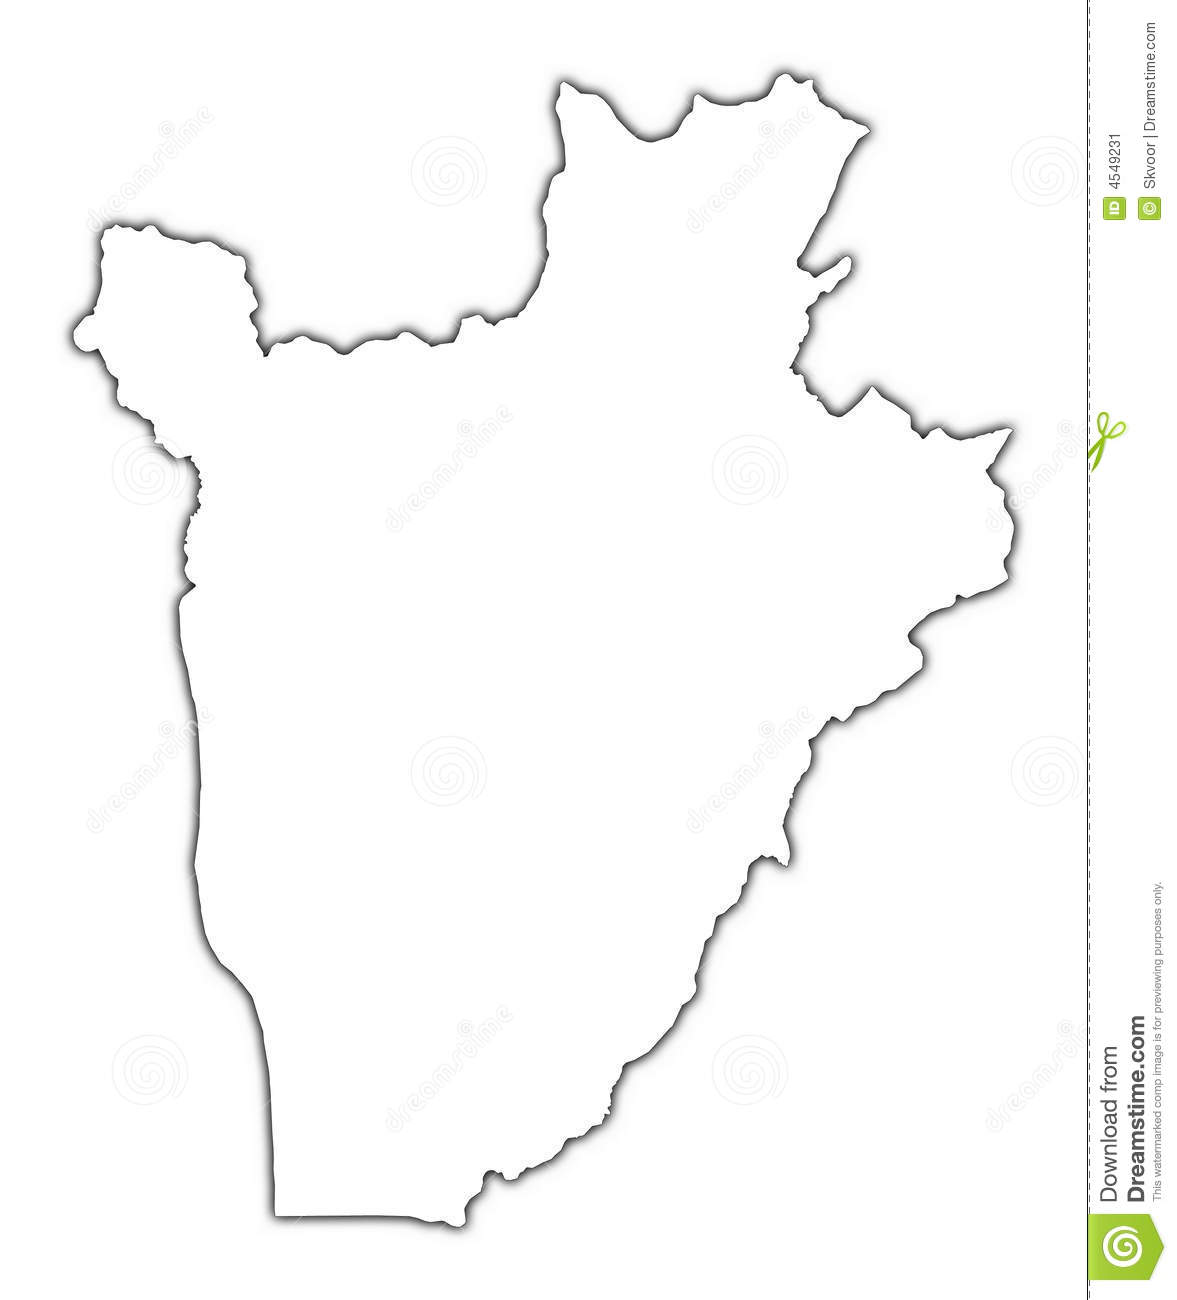 Meetings and events additionally Royalty Free Stock Image Senegal Outline Map Image4635146 likewise Royalty Free Stock Photo Colombia Outline Map Image4360485 in addition Blank Map Of Brazil besides Royalty Free Stock Image Zambia Outline Map Image4486266. on map projection